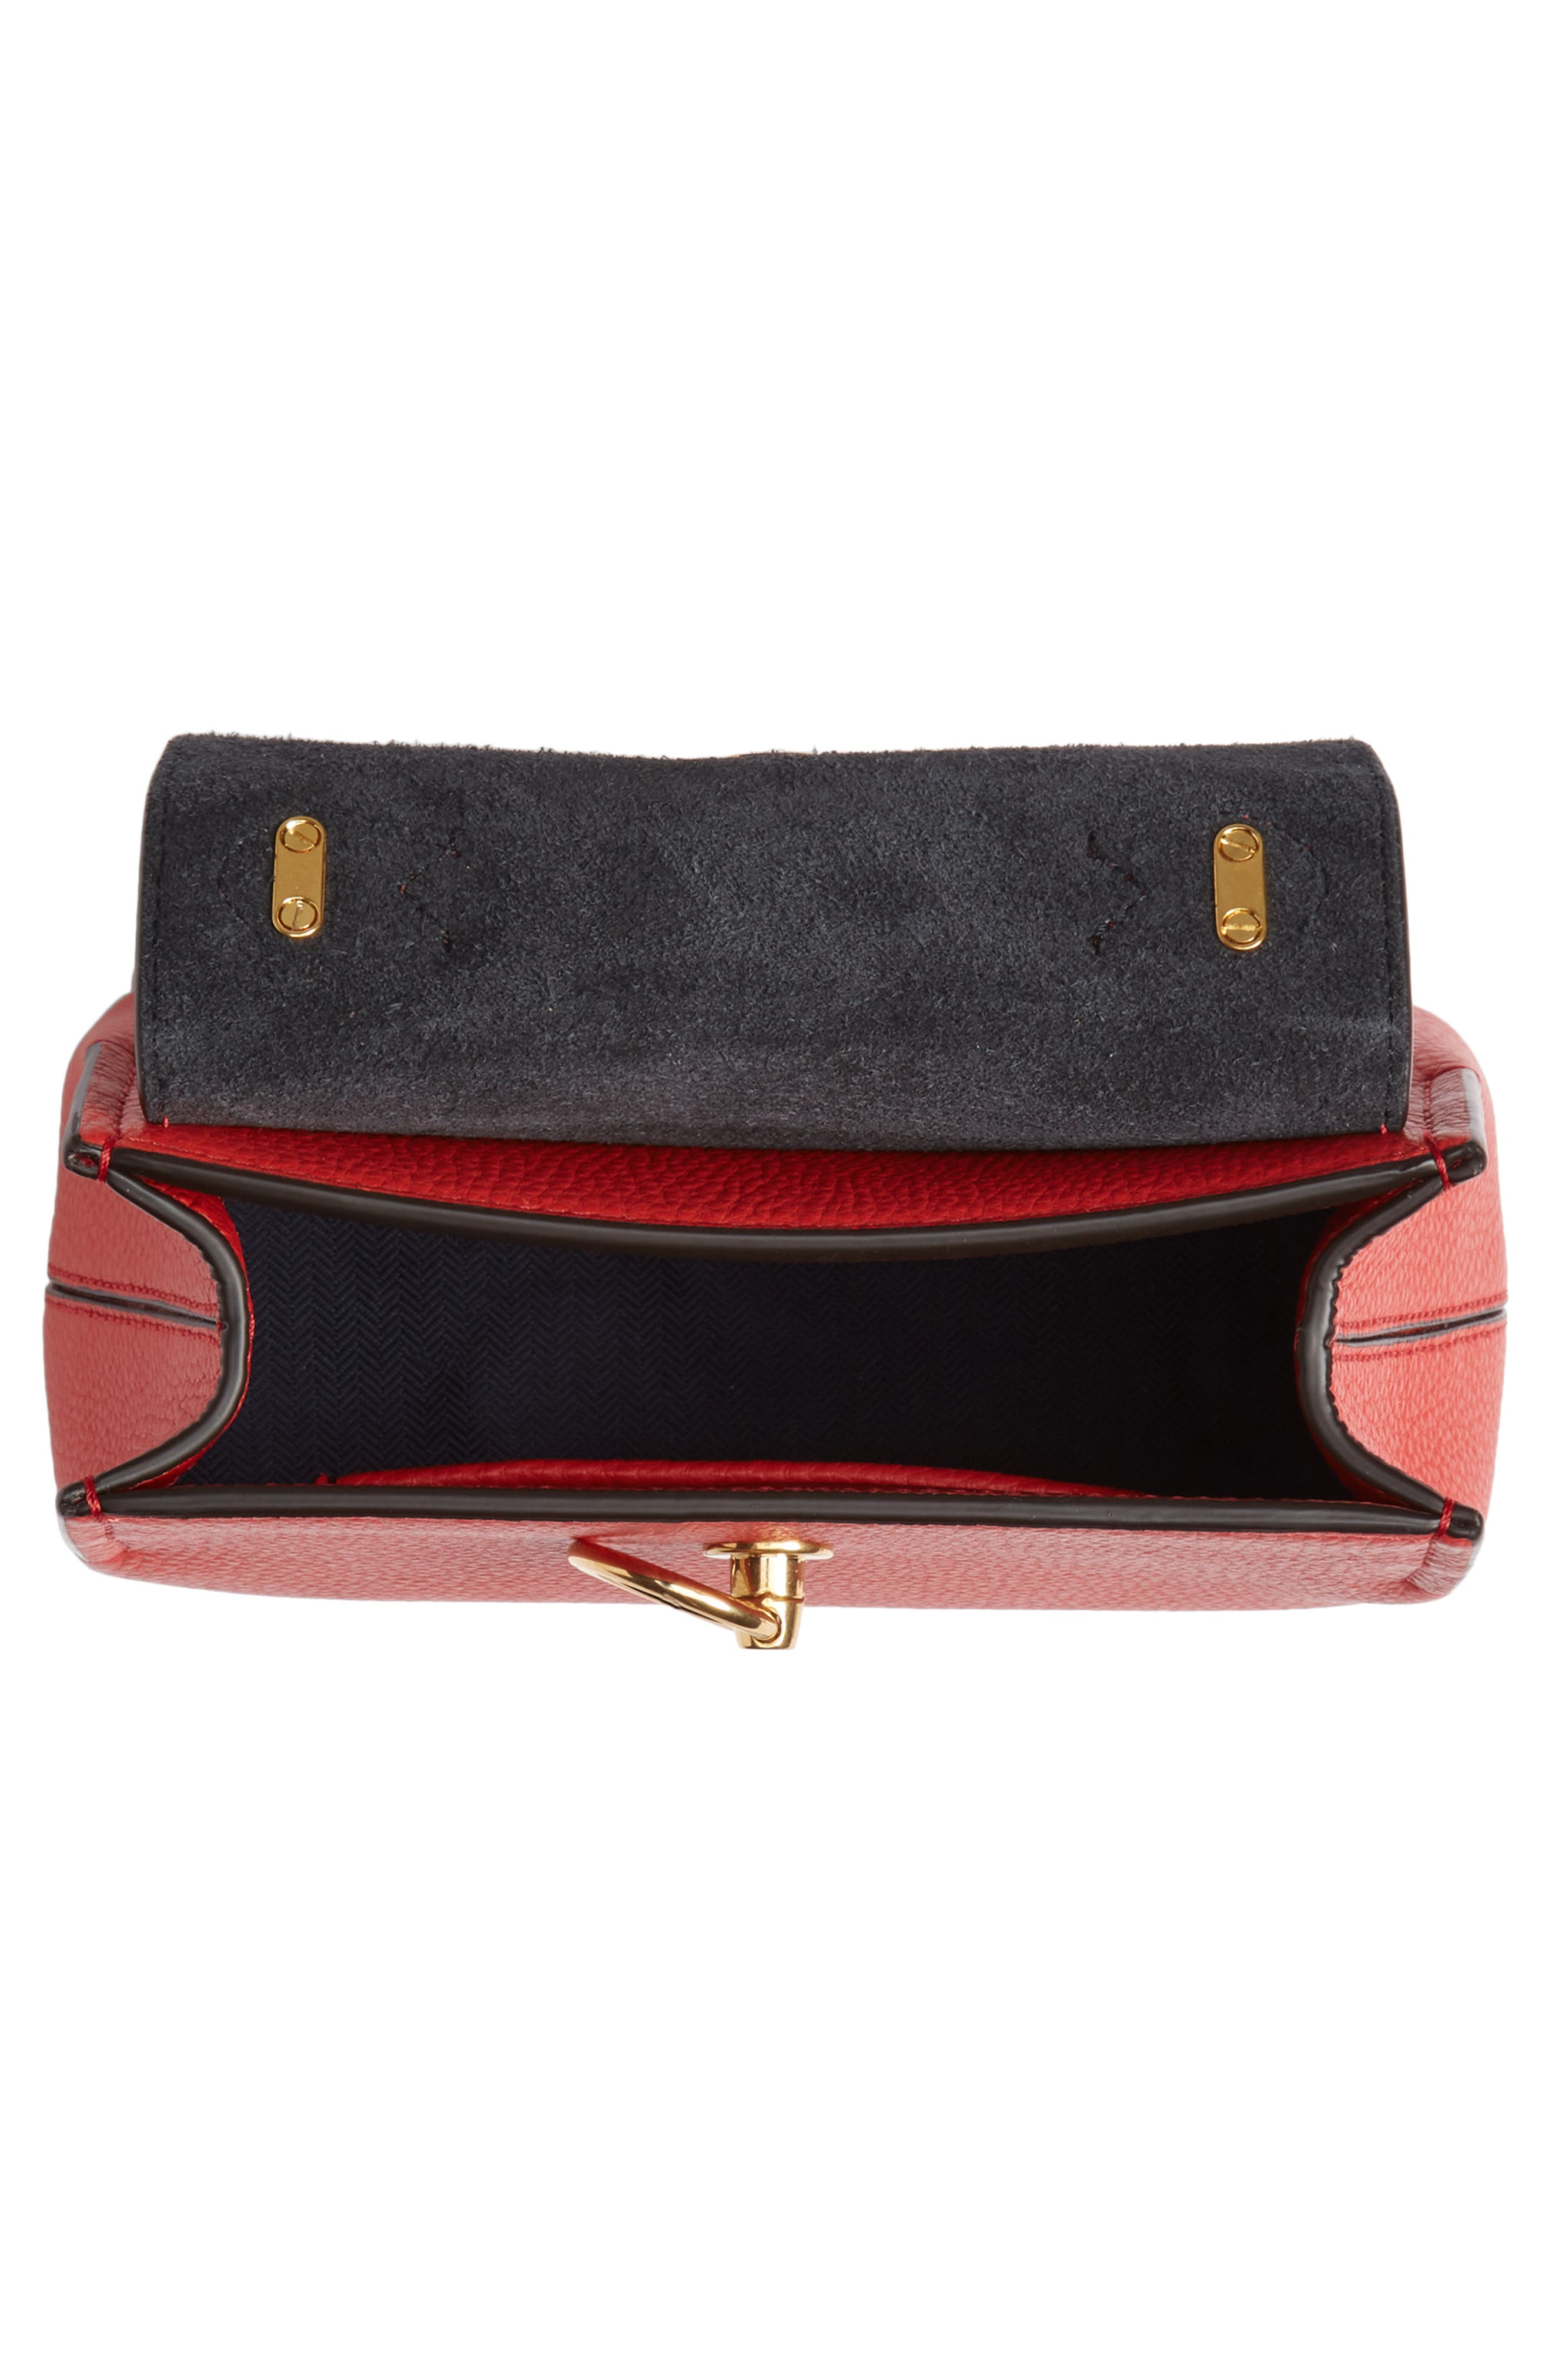 MULBERRY,                             Micro Seaton Leather Convertible Crossbody Bag,                             Alternate thumbnail 4, color,                             HIBISCUS RED